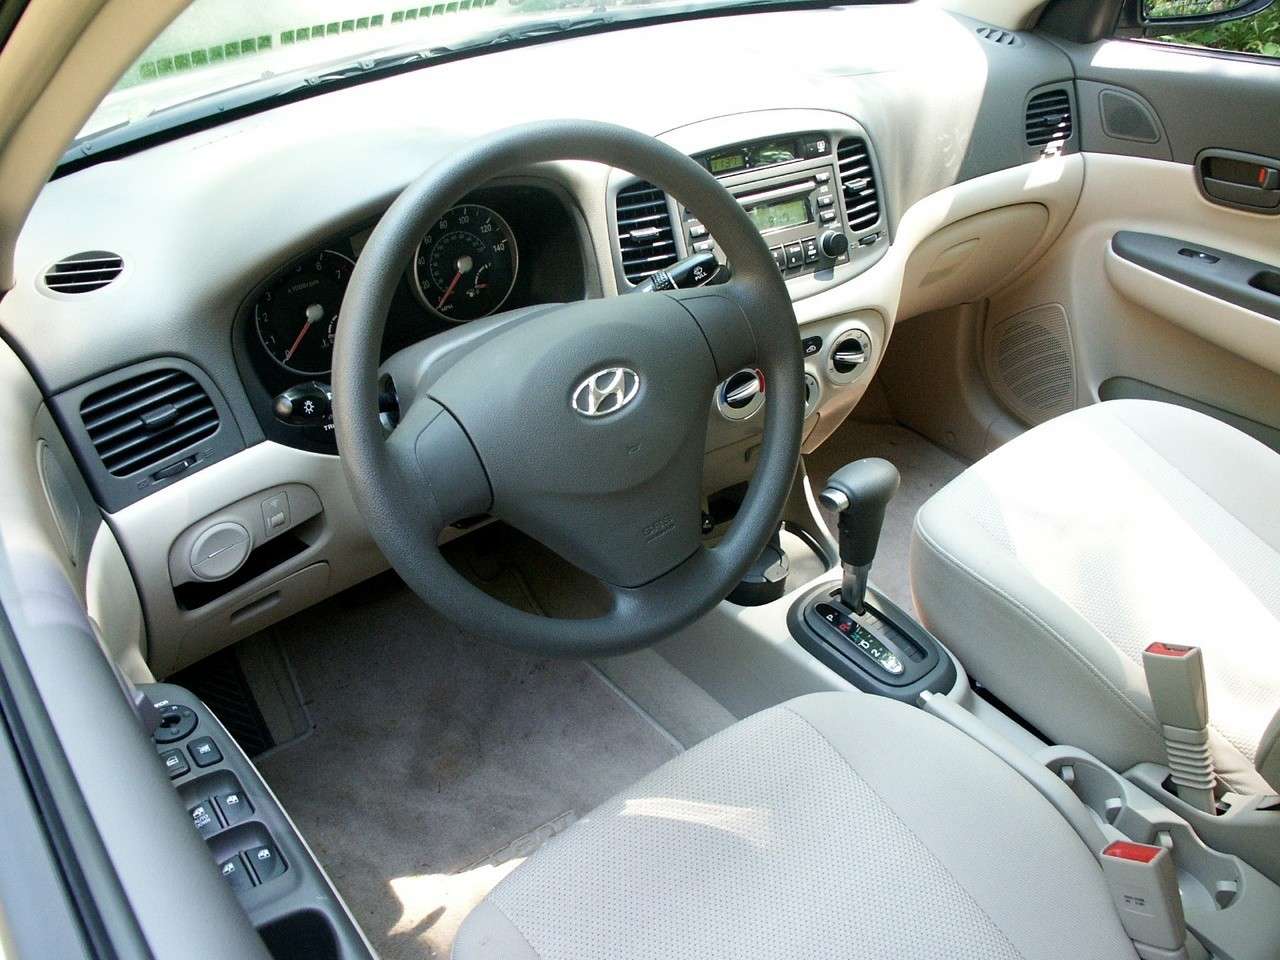 HYUNDAI Accent 4 Doors specs & photos - 2006, 2007, 2008 ...